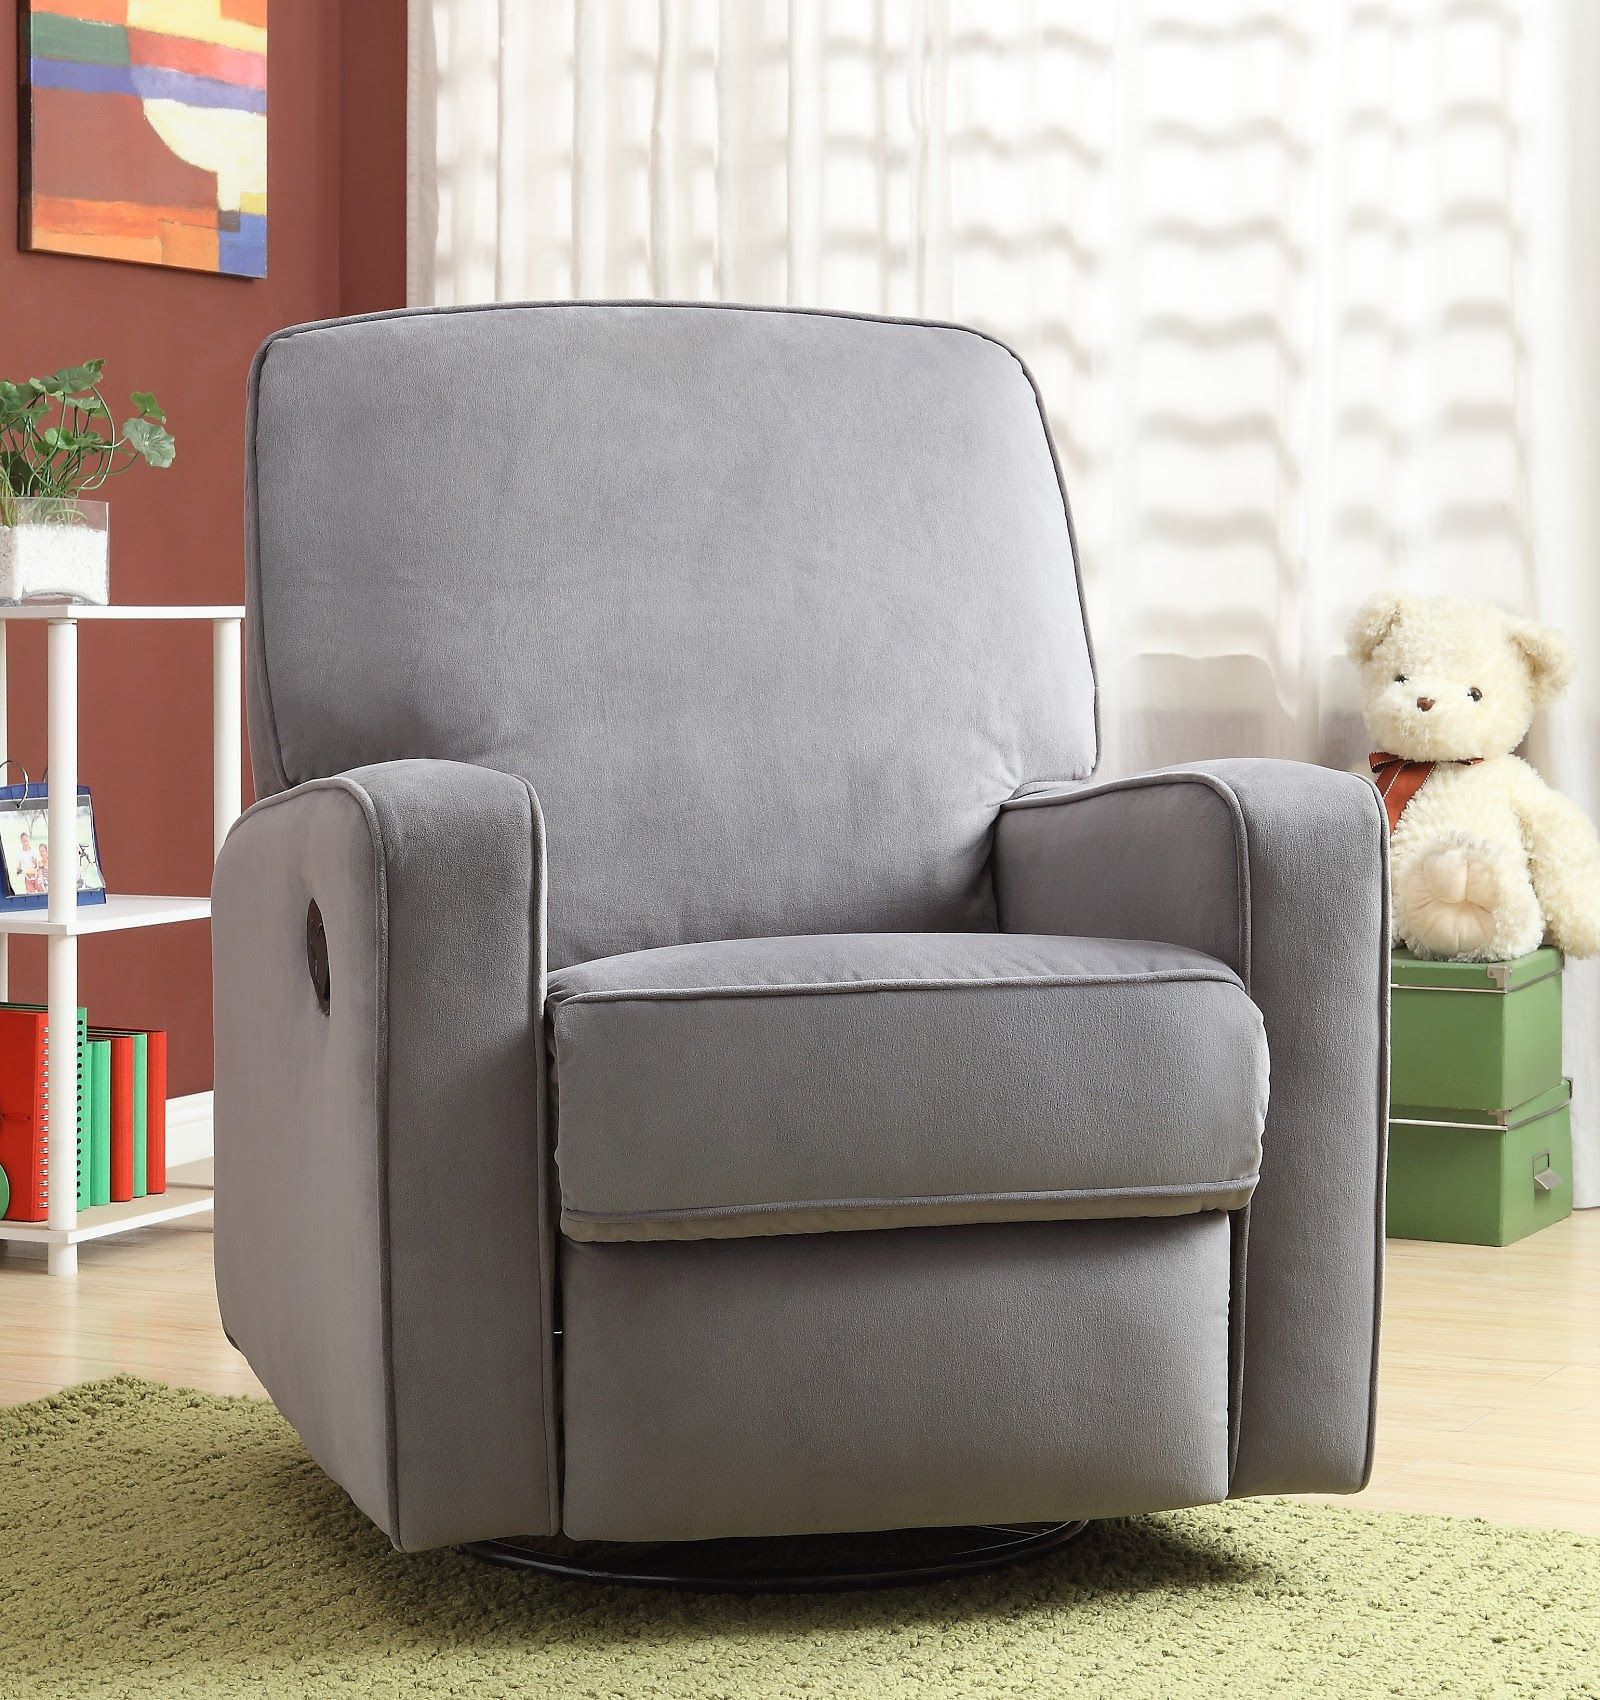 glider chair with ottoman india yoga ball chairs in the classroom rocker recliner home design ideas